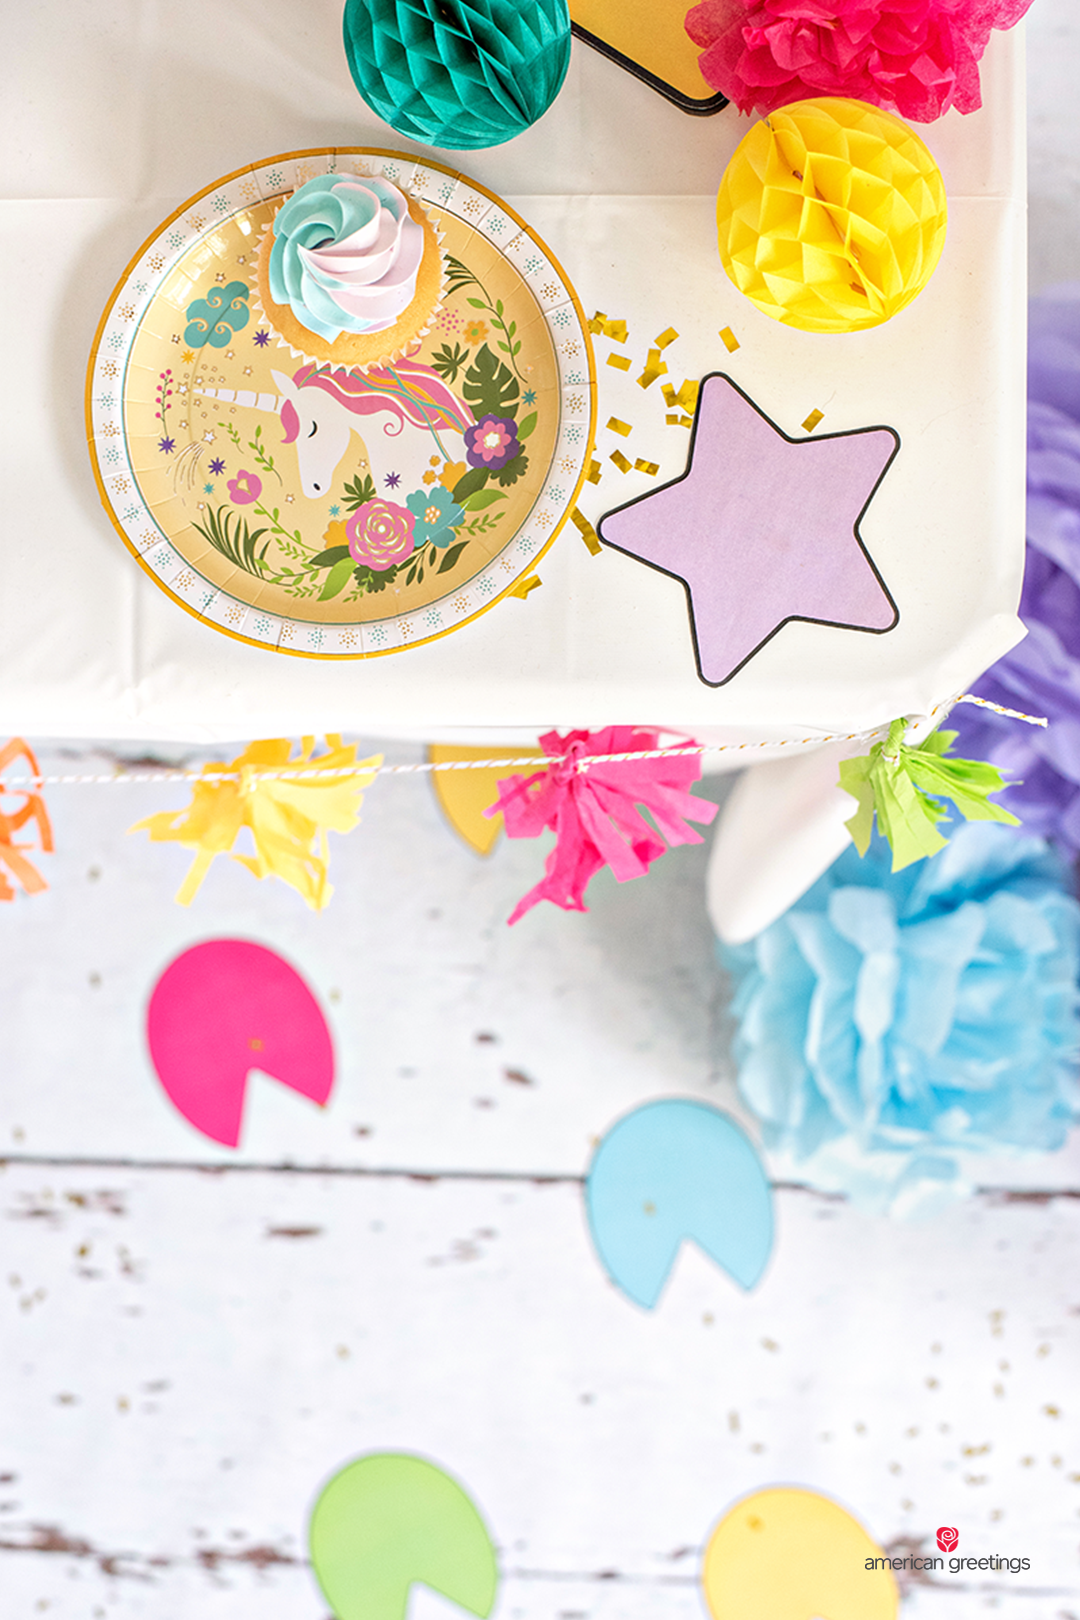 Purple printable star near a unicorn plate with a colorful cupcake on a table.